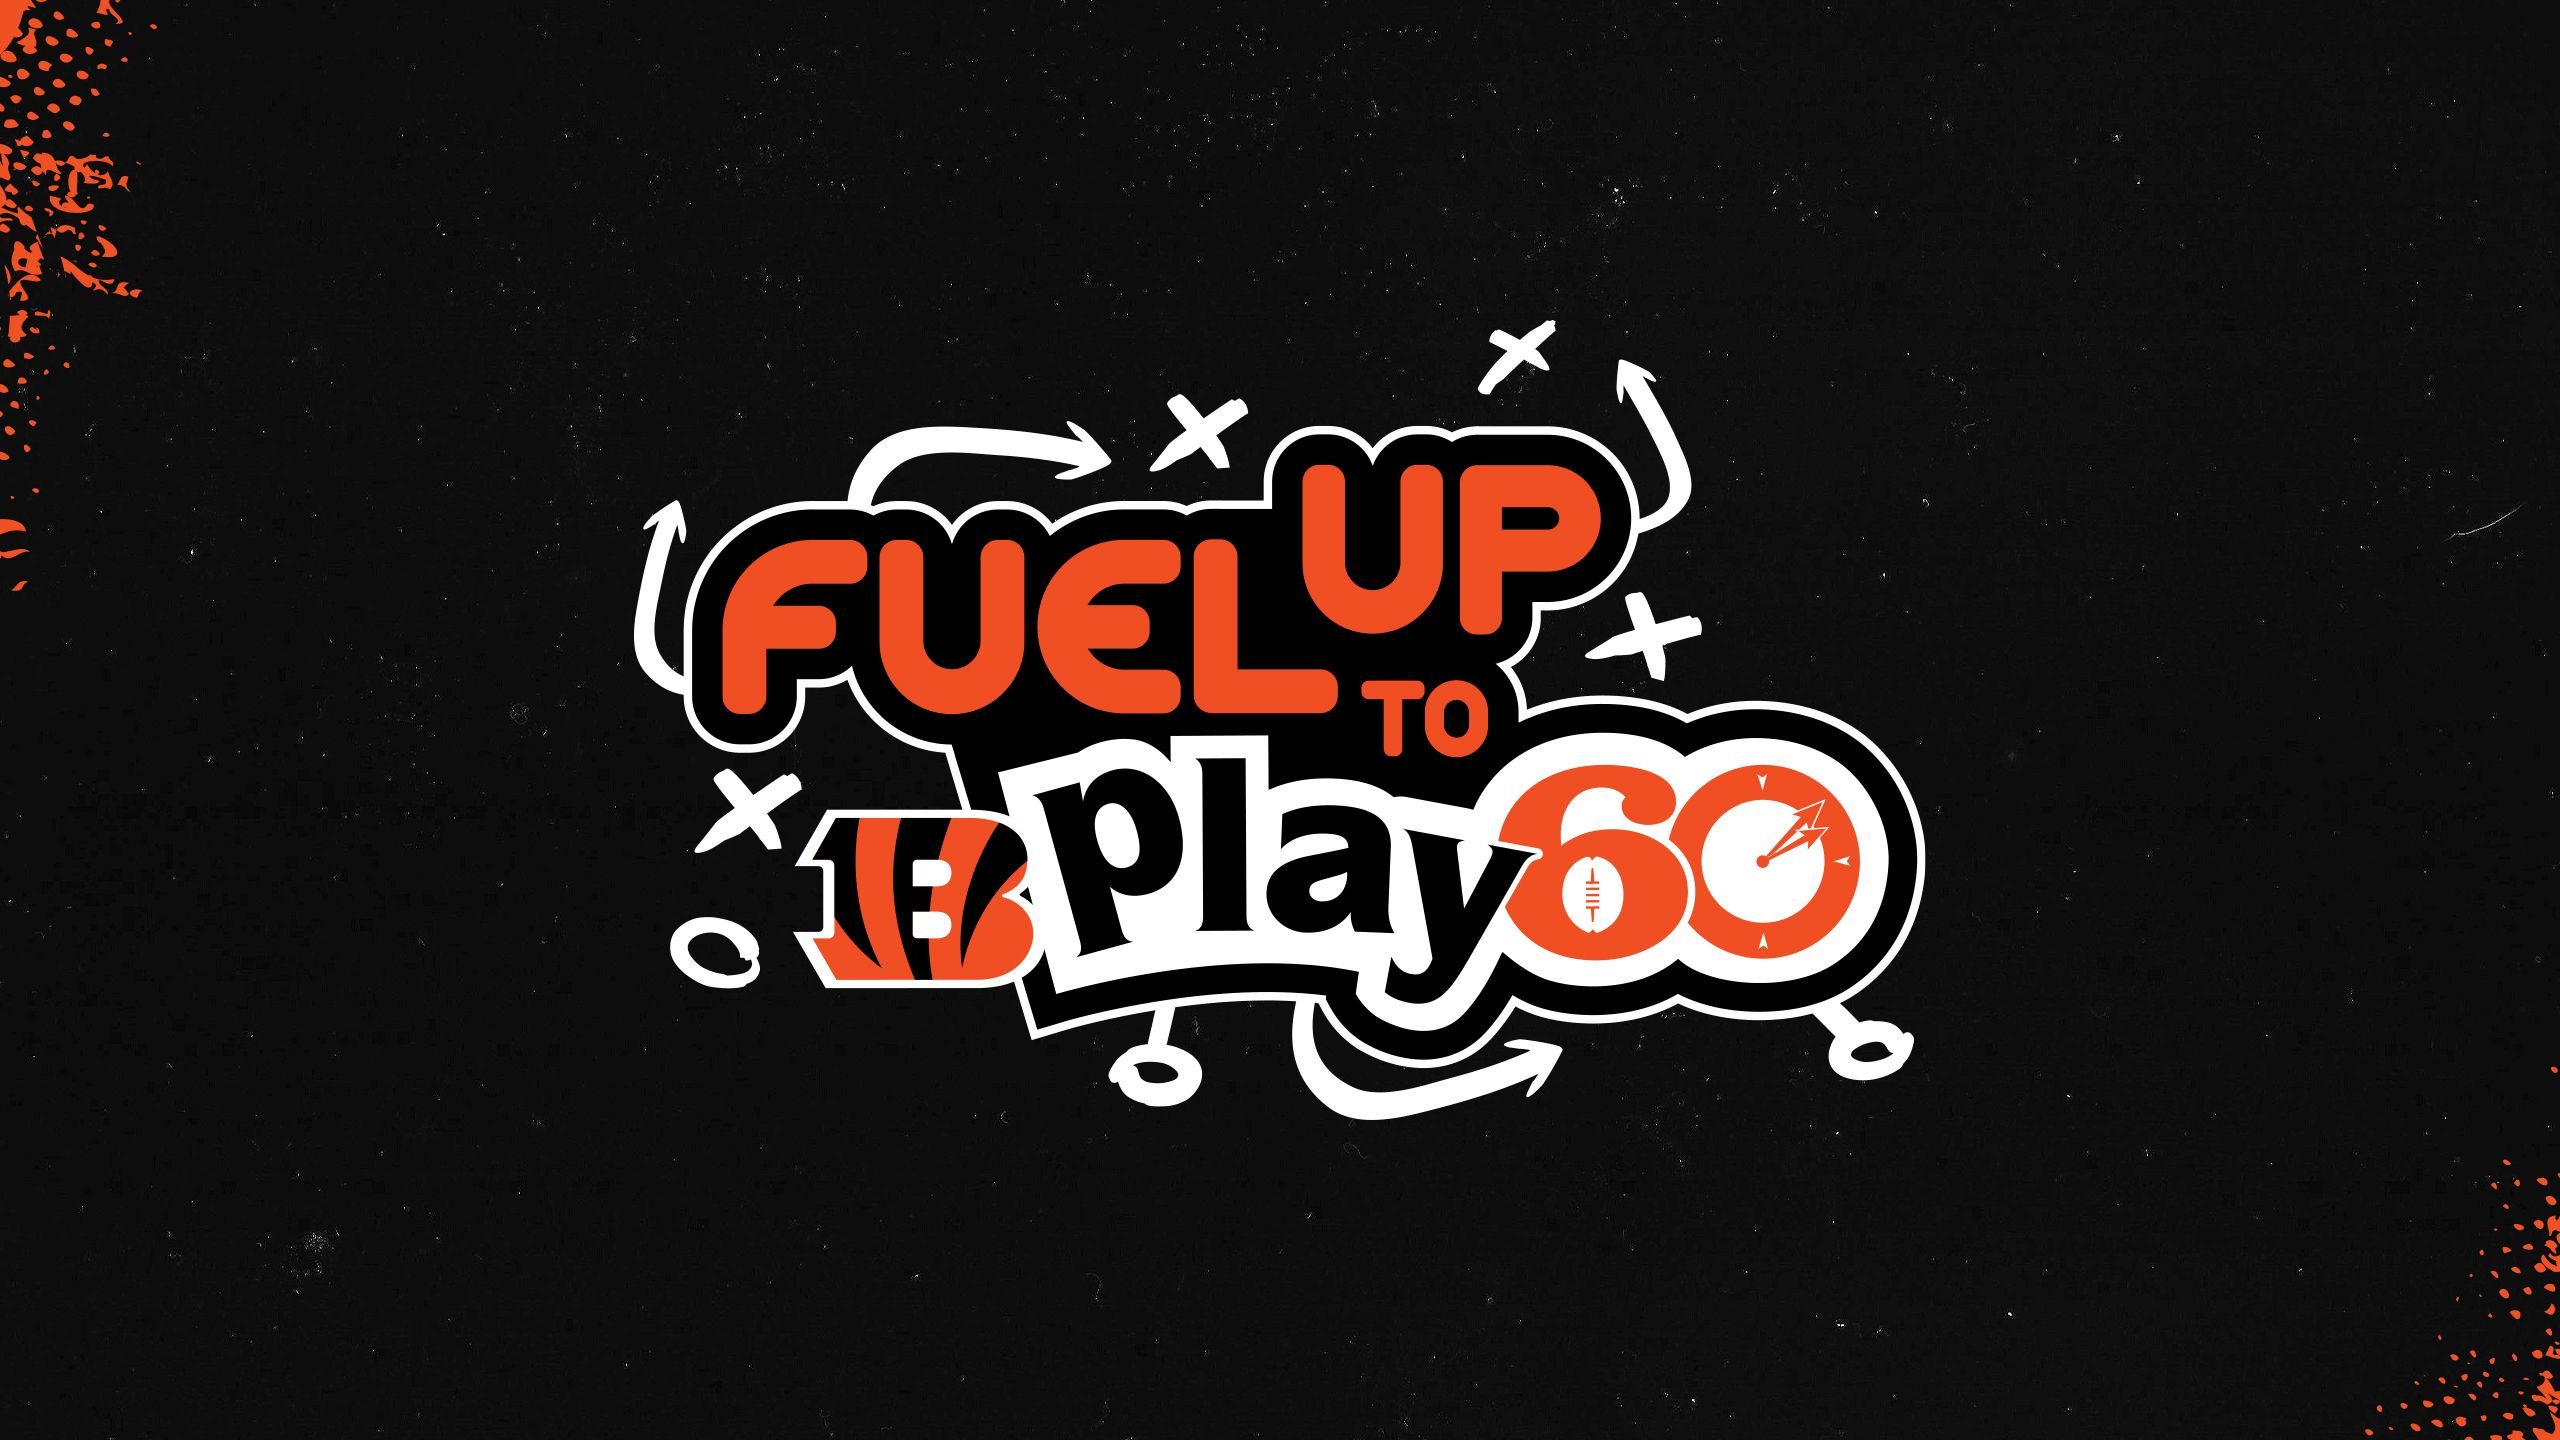 200723-fuel-up-to-play60